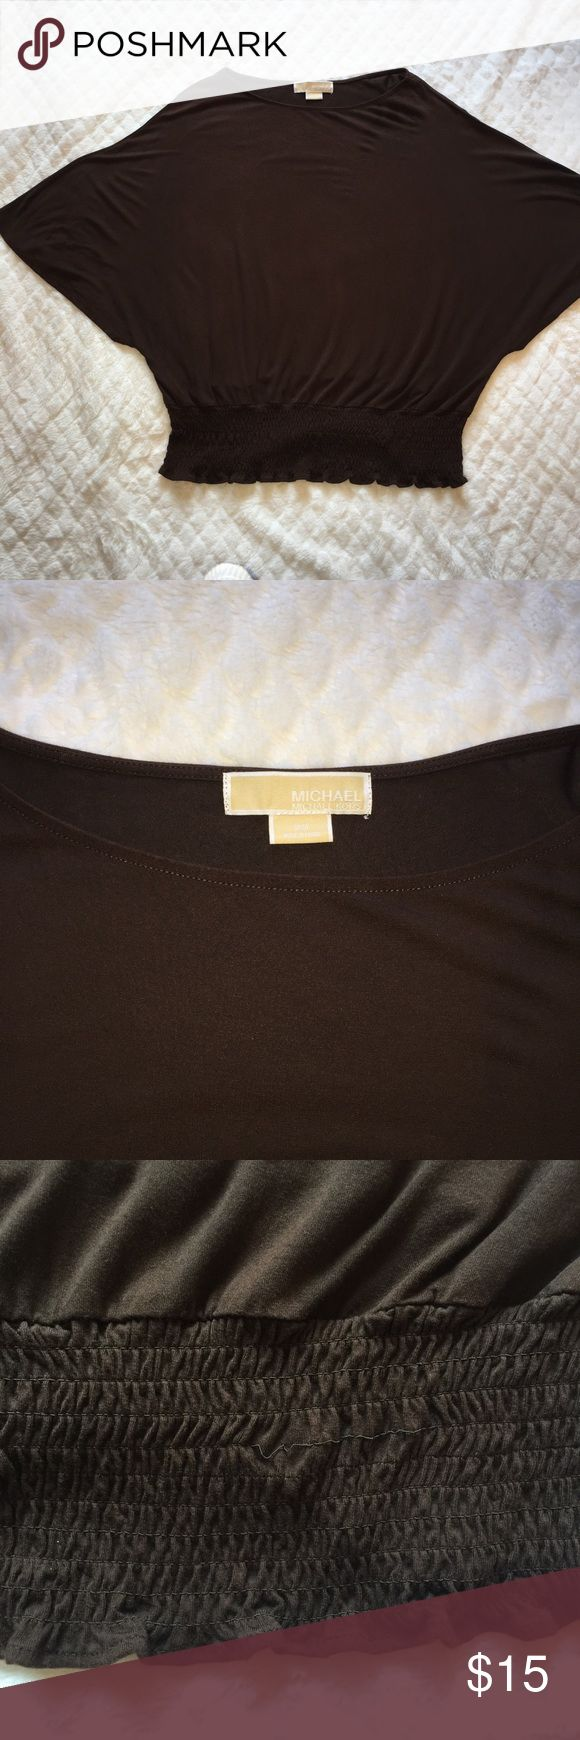 Michael Kors Brown Batwing Top MICHAEL Michael Kors Brown Batwing Top with banded bottom. Does have some loose elastic. Still lots of style left in it. Made from 95% Rayon and 5% Spandex. Make an offer 😄🎀 Michael Kors Tops